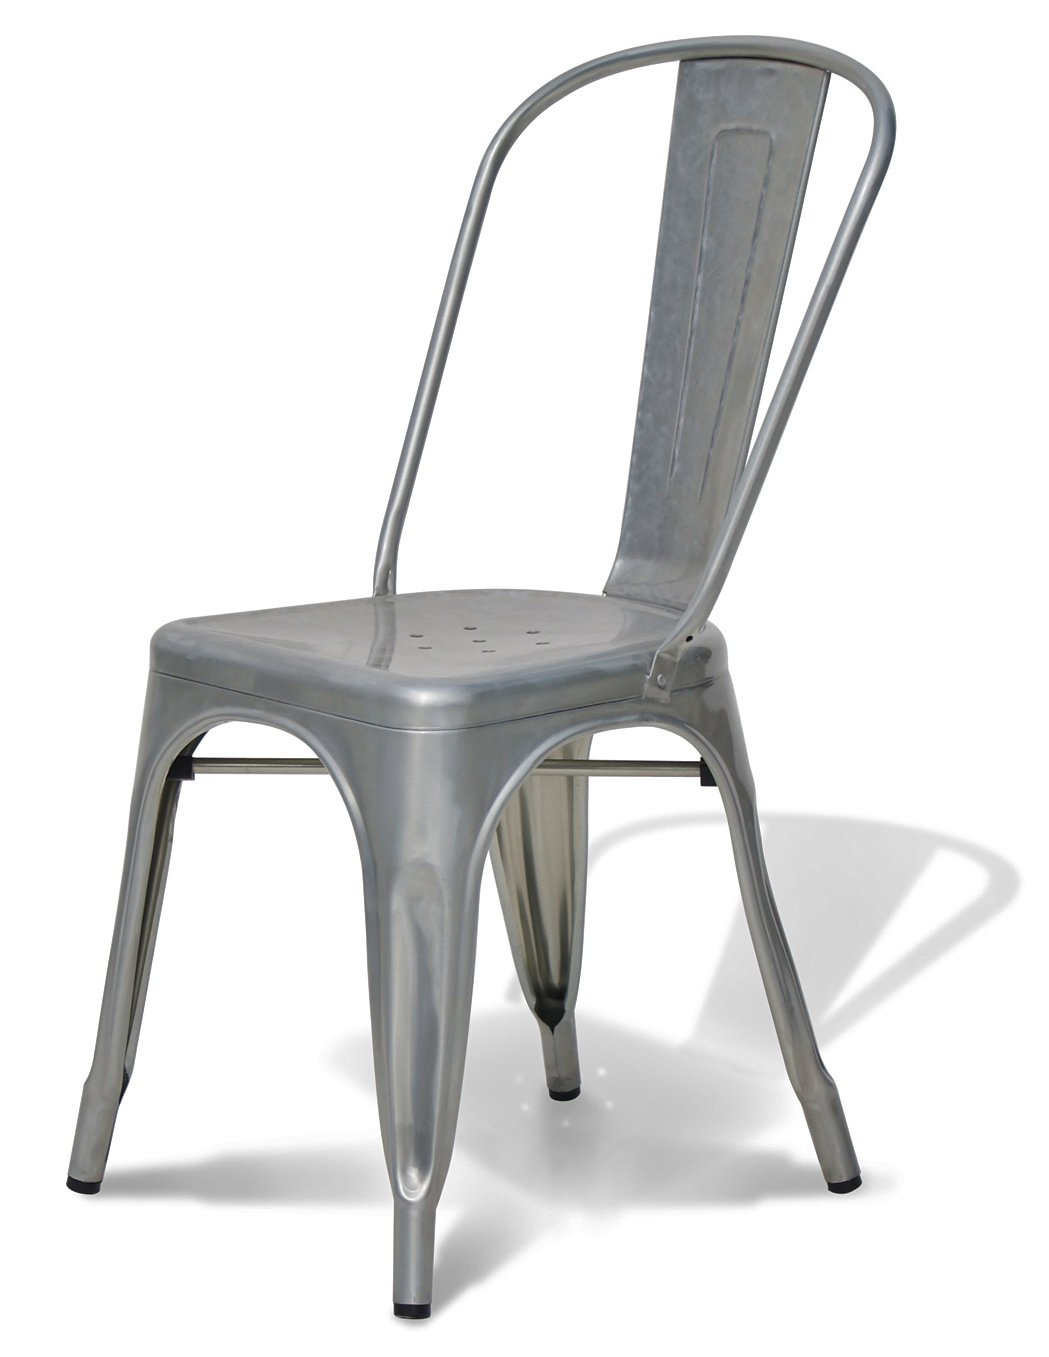 Galvanized Steel Chairs Stella Metal Cafe Side Chair In Brushed Galvanized Finish